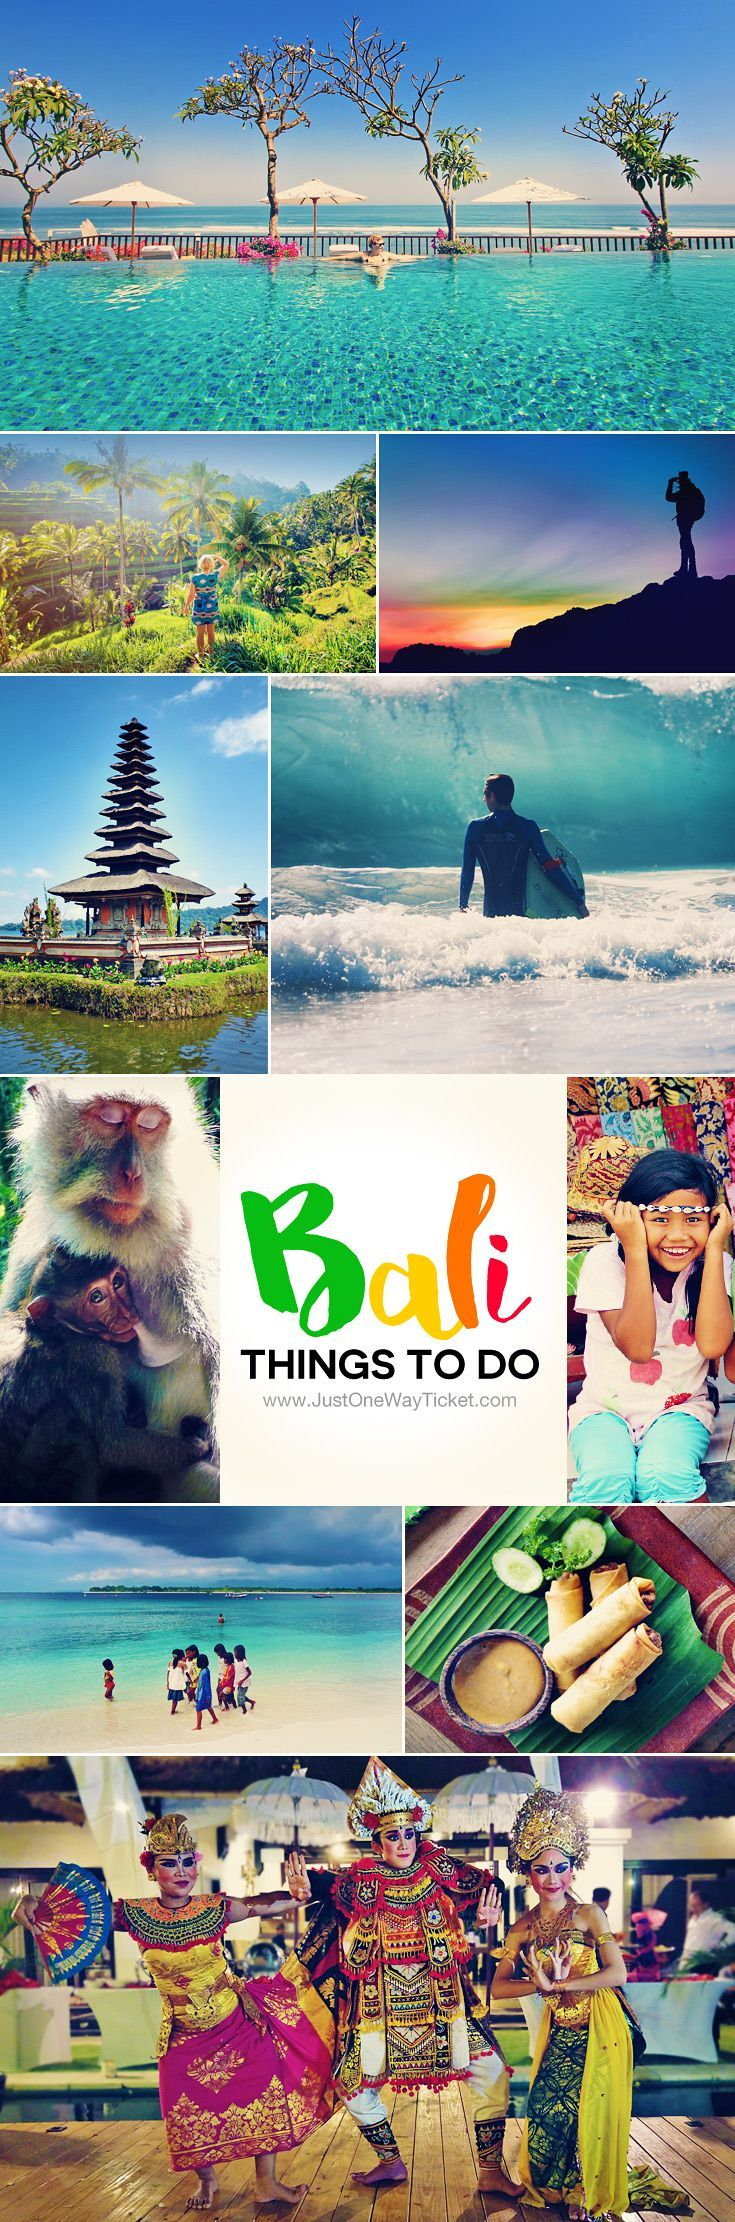 THINGS TO DO IN BALI, INDONESIA - THE ONLY TRAVEL GUIDE YOU NEED!